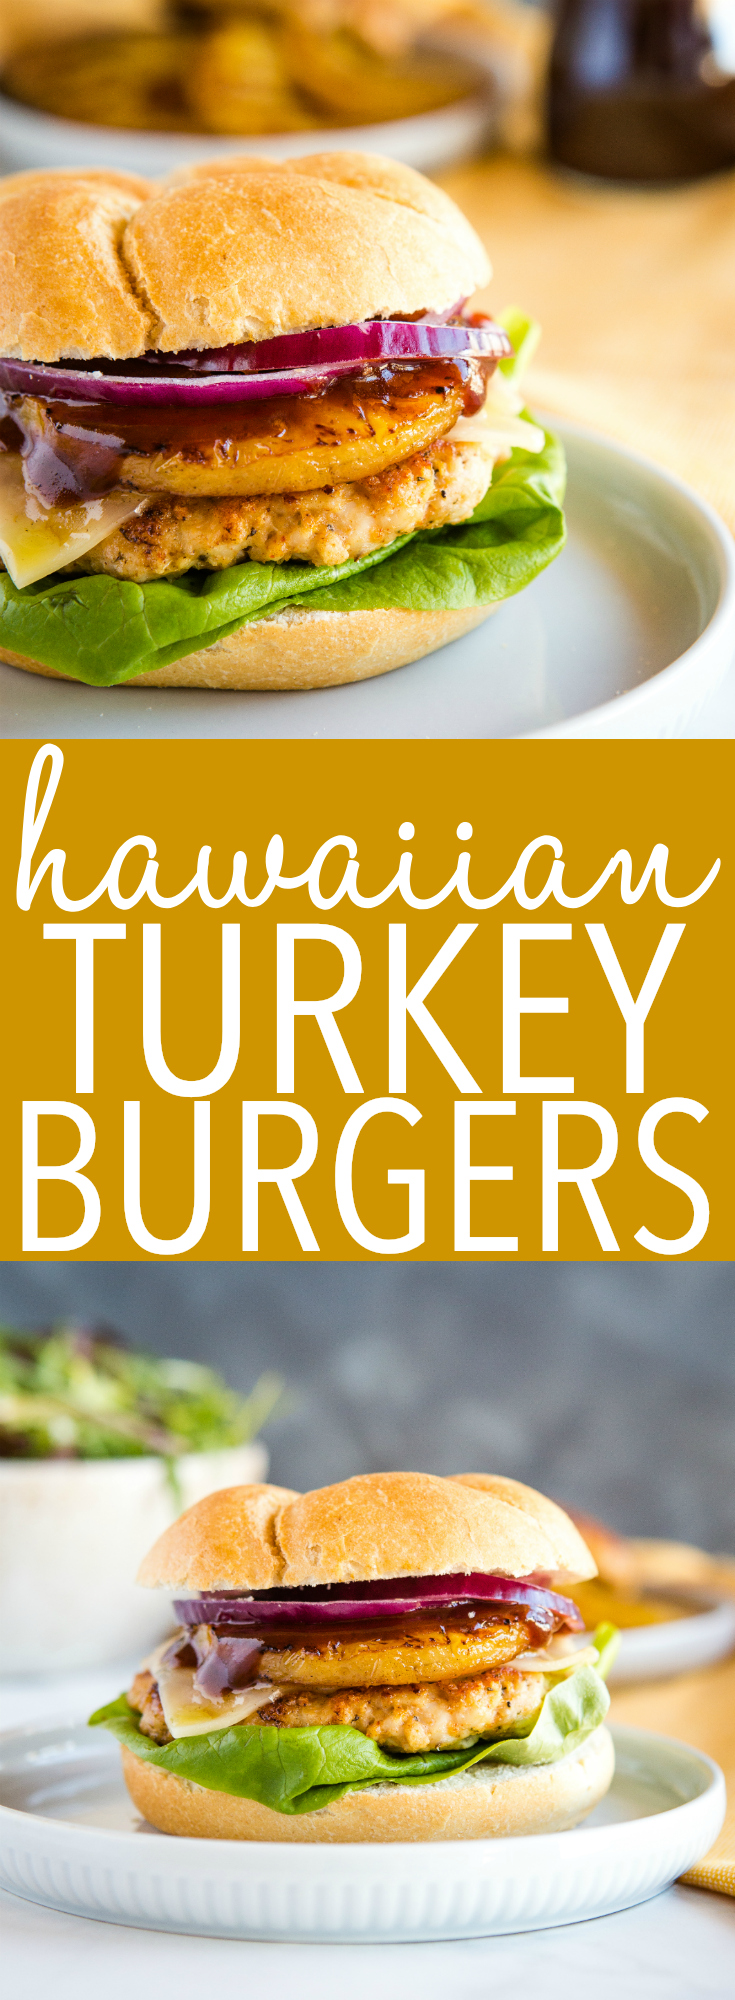 These Hawaiian Turkey Burgers are low in fat and bursting with smoky flavour! Top them with fresh grilled pineapple and barbecue or teriyaki sauce! Recipe from thebusybaker.ca! #burgers #summer #grilling #hawaii #hawaiian #grilled #pineapple #teriyaki #barbecue #healthy #lowfat #lowcalorie #turkey #chicken #lean #protein via @busybakerblog